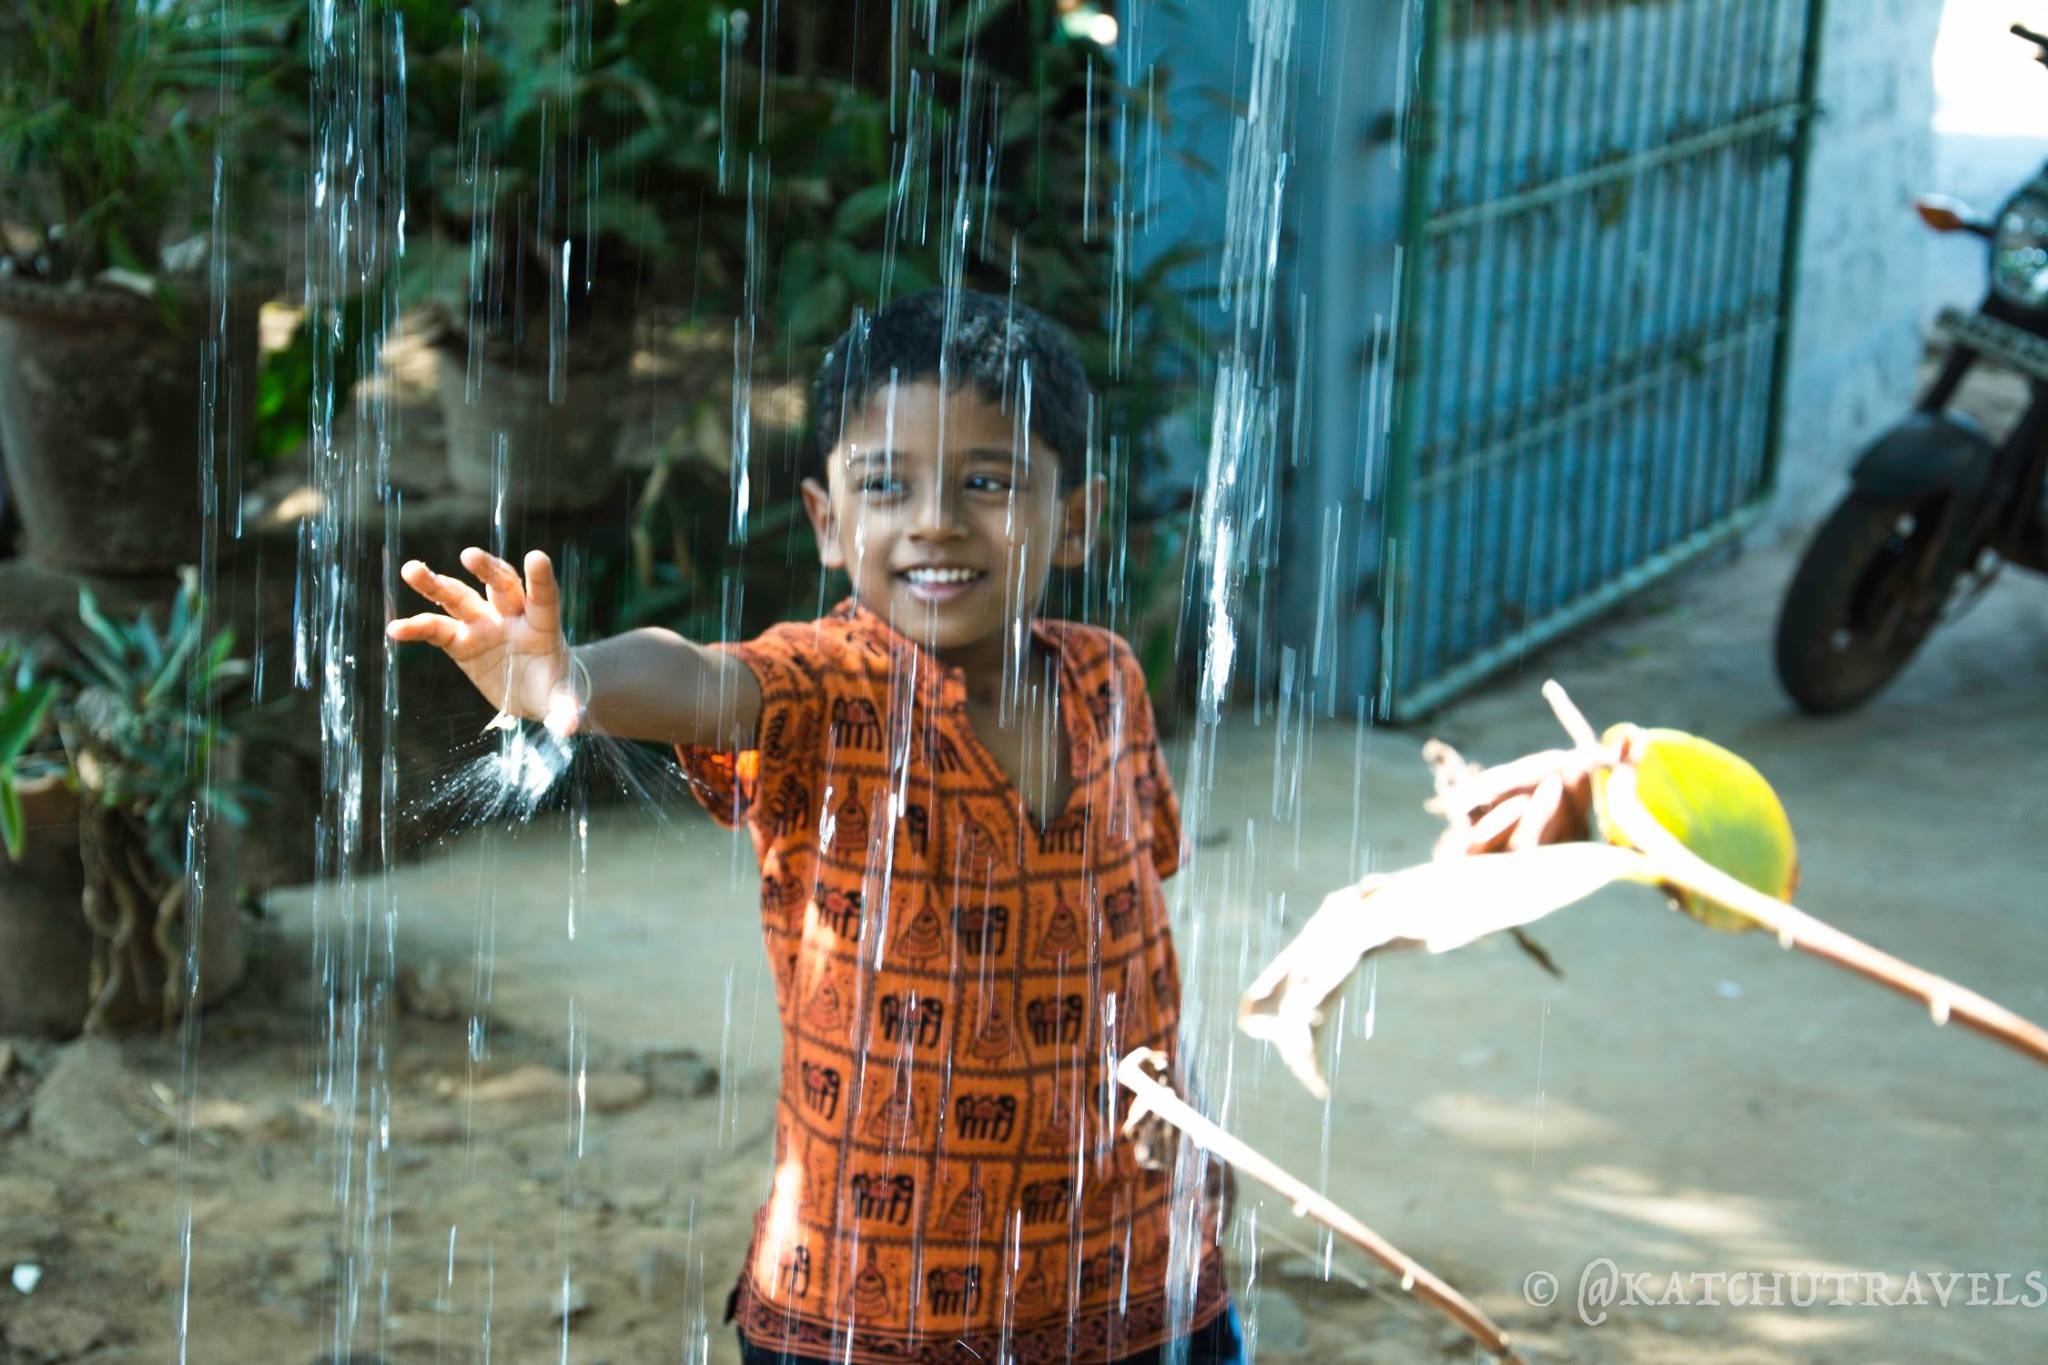 Nandu playing around with the water fountain at 'The Space' in Goa